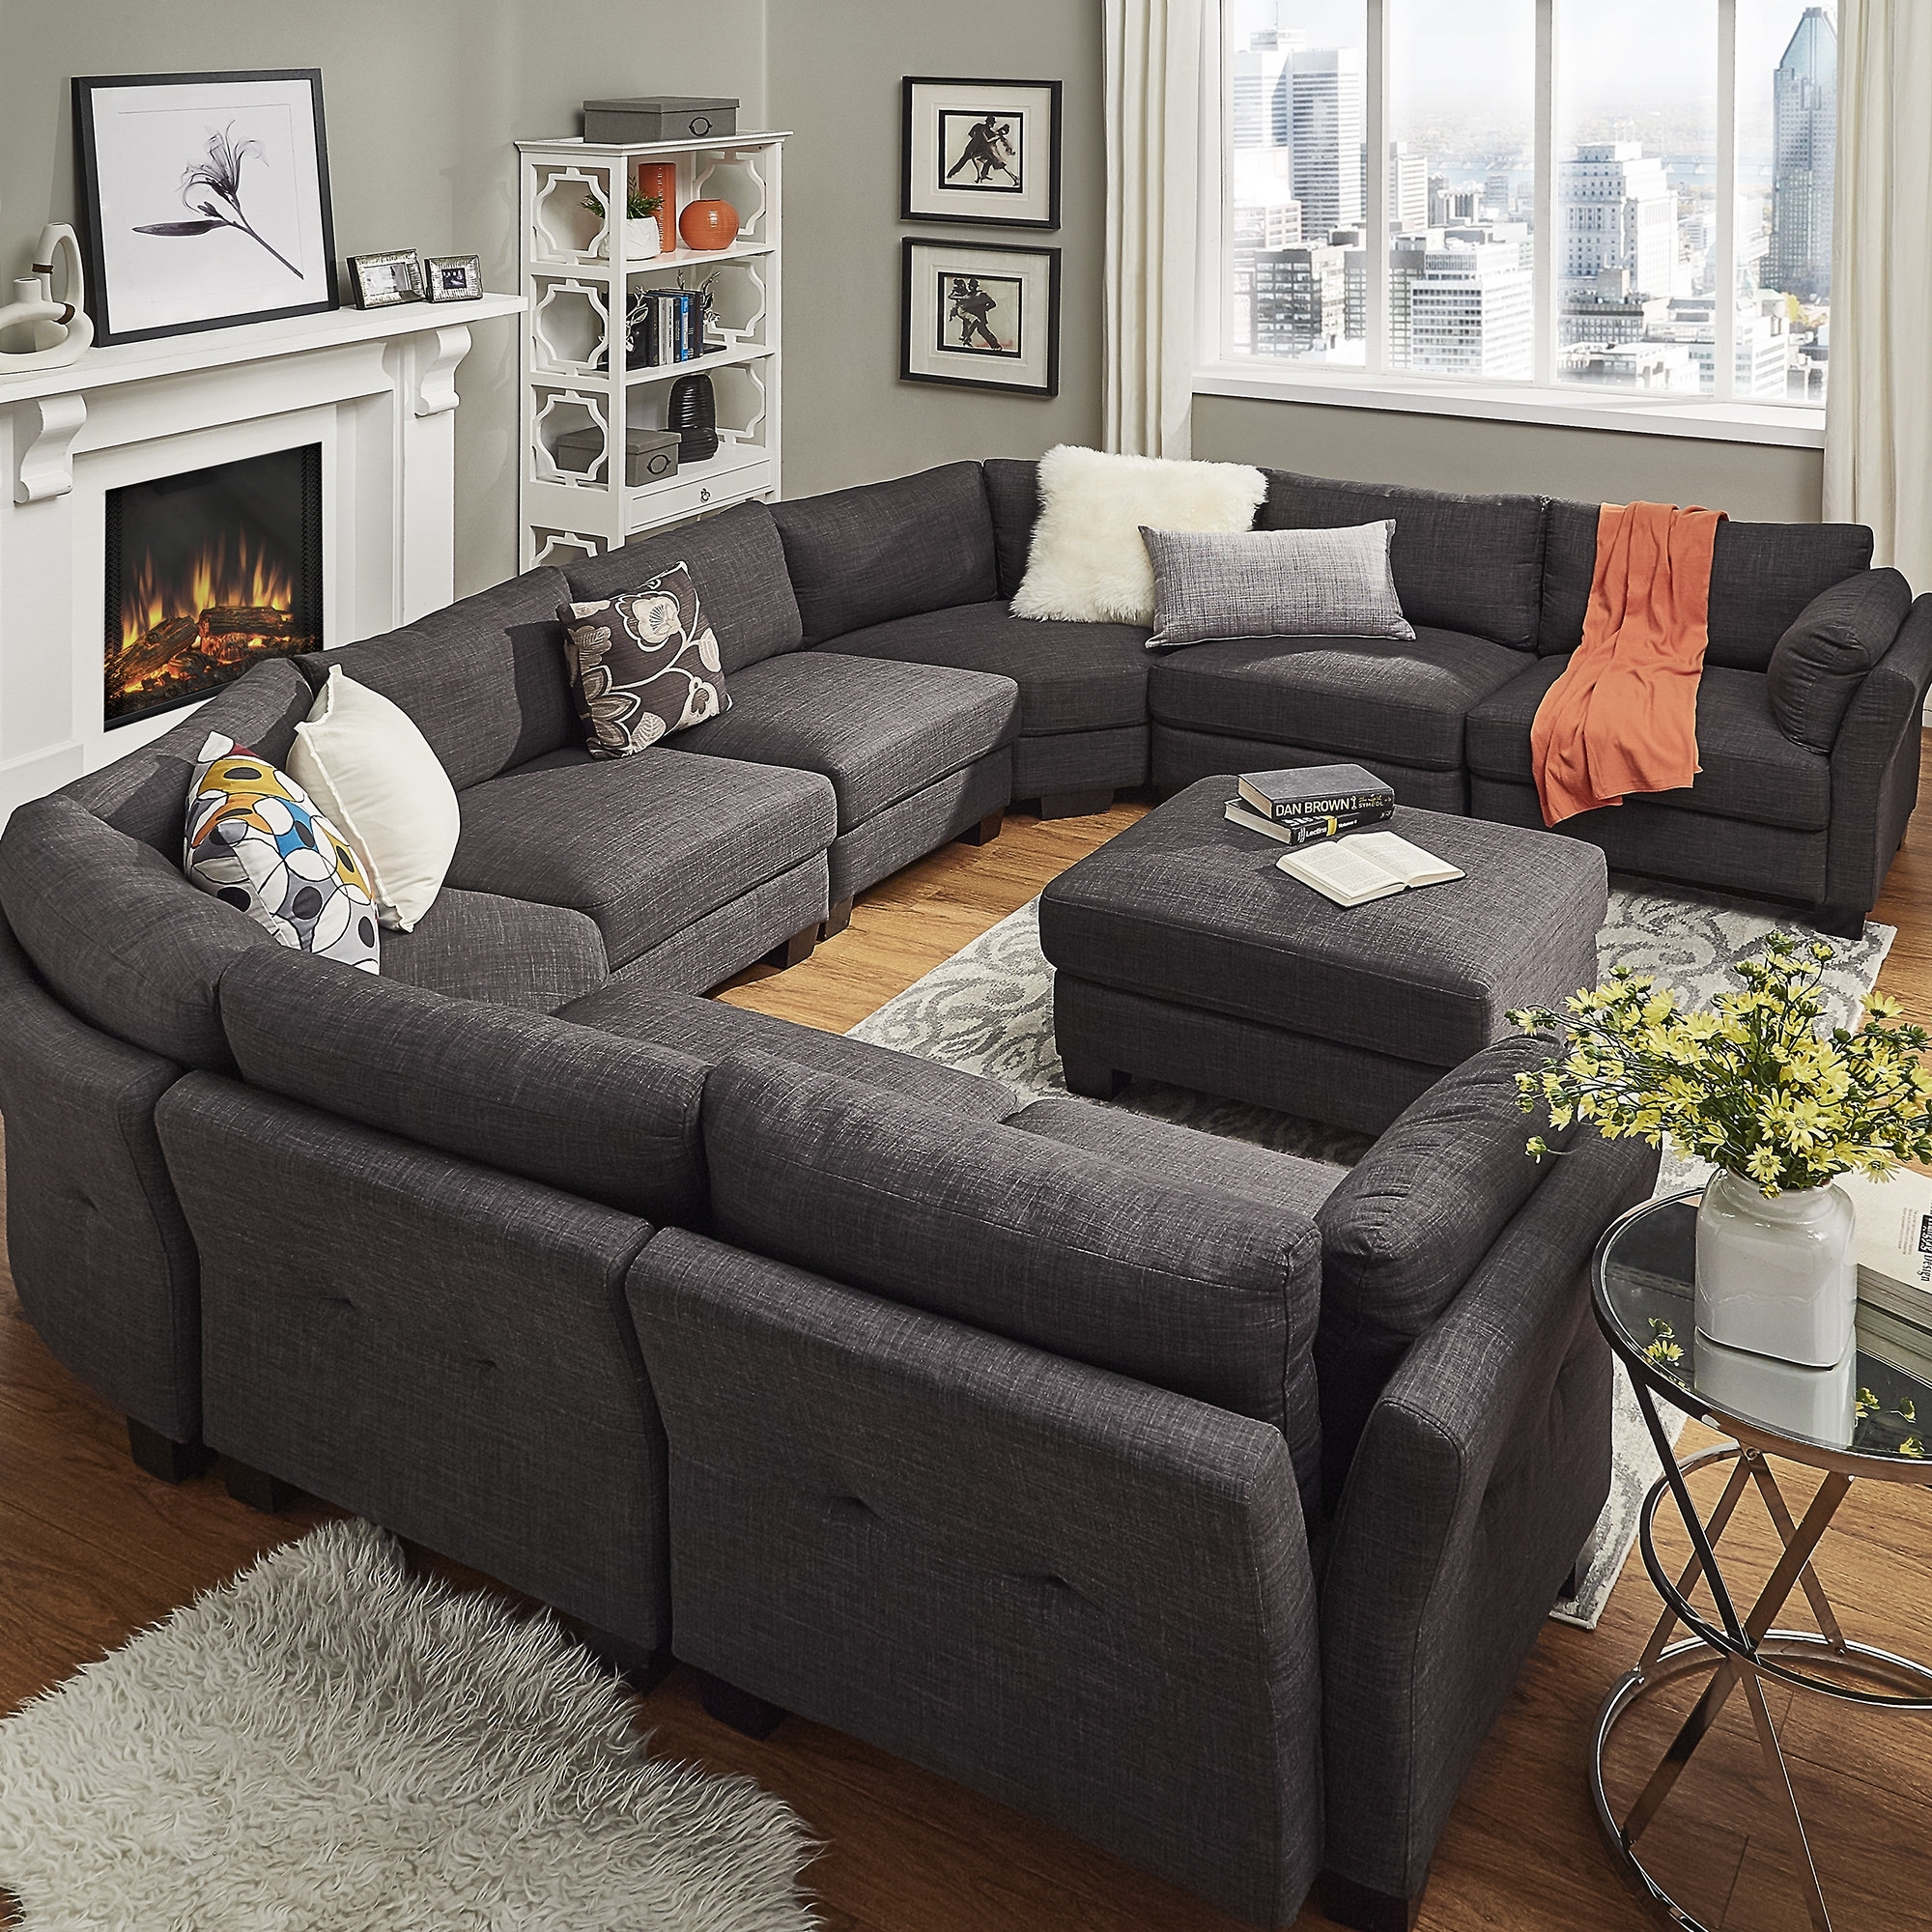 Mercury Row Alkmene Sectional Collection & Reviews | Wayfair within Mesa Foam 2 Piece Sectionals (Image 16 of 30)